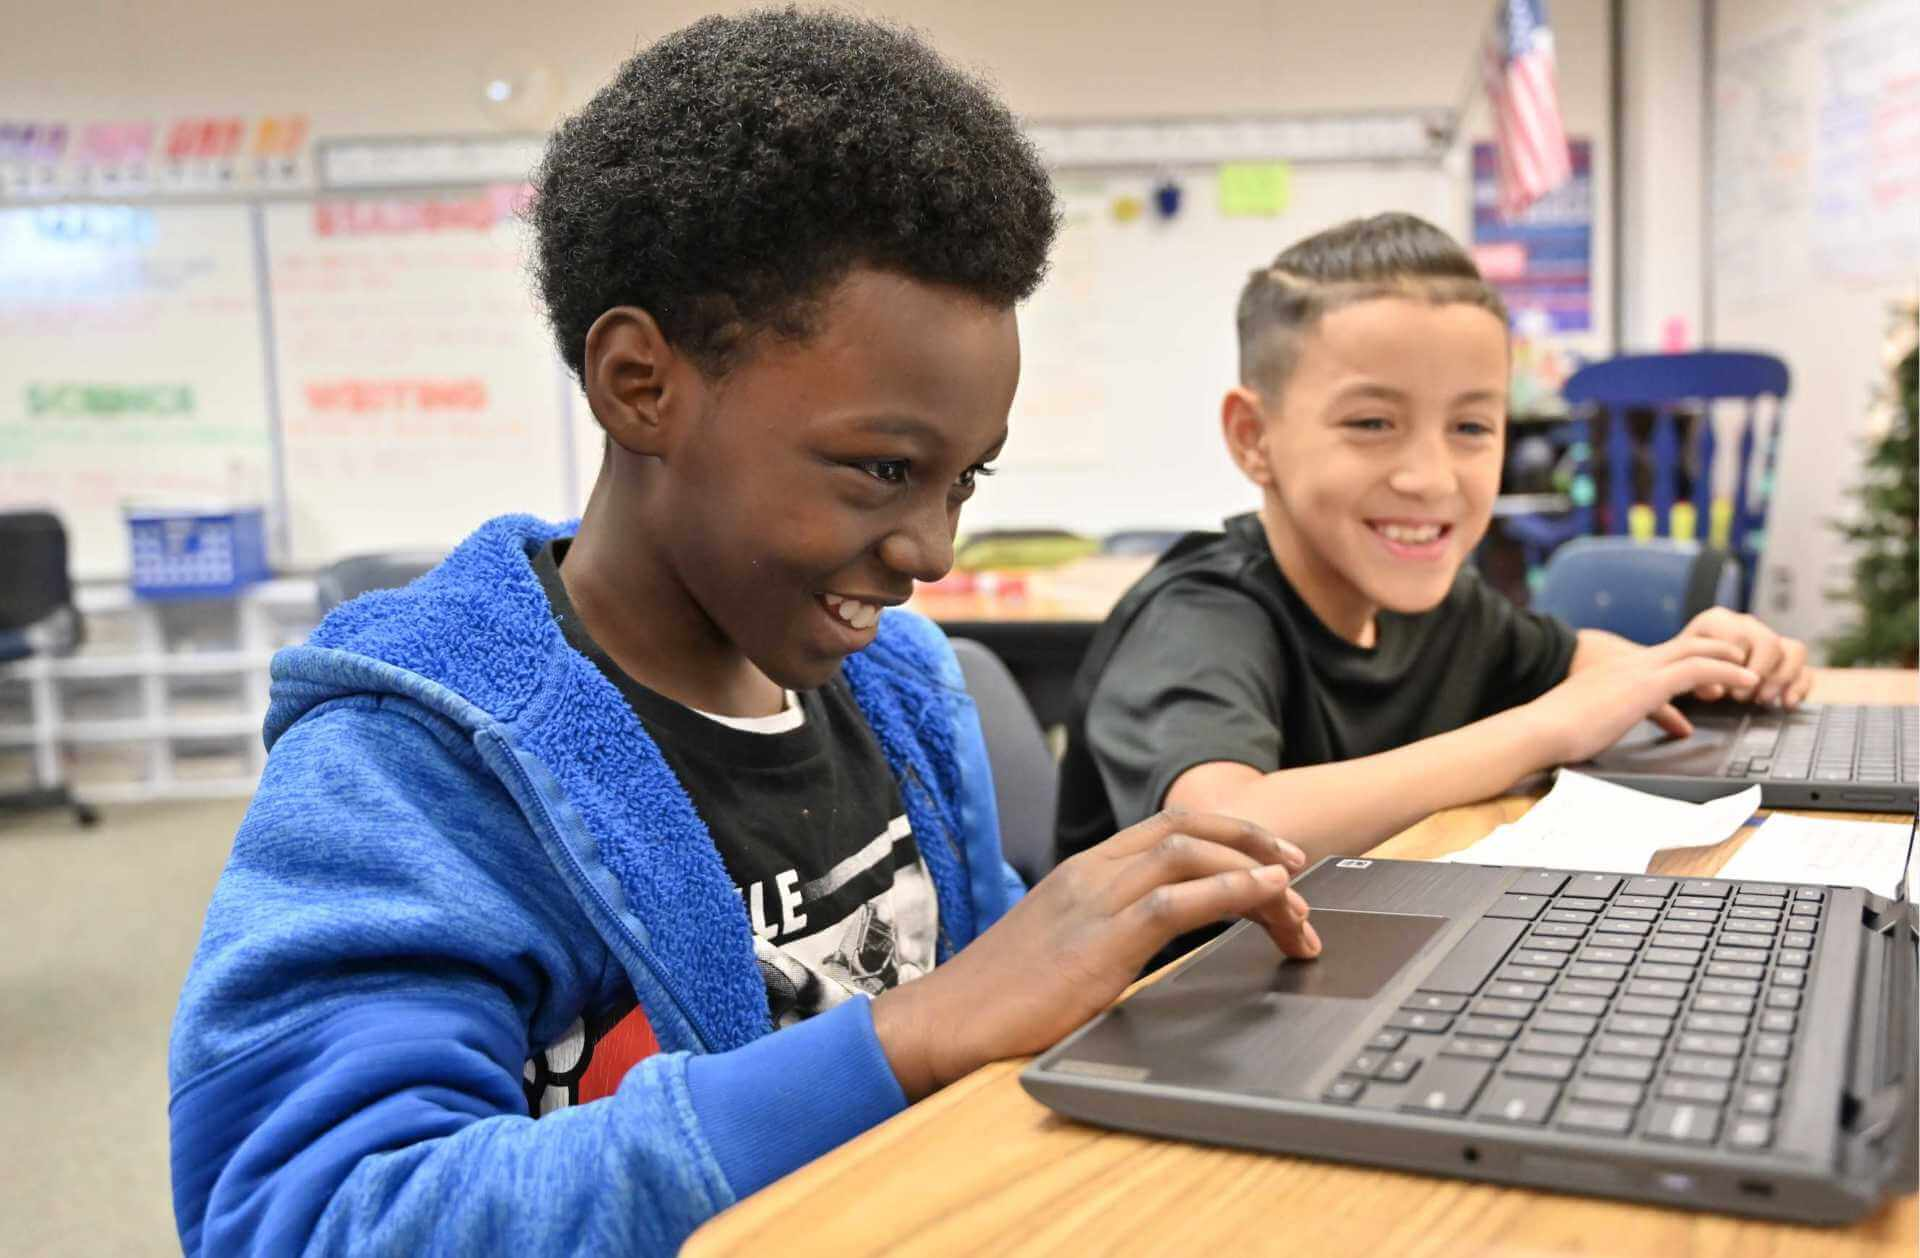 McDougle Students and Teachers Master Personalized Learning